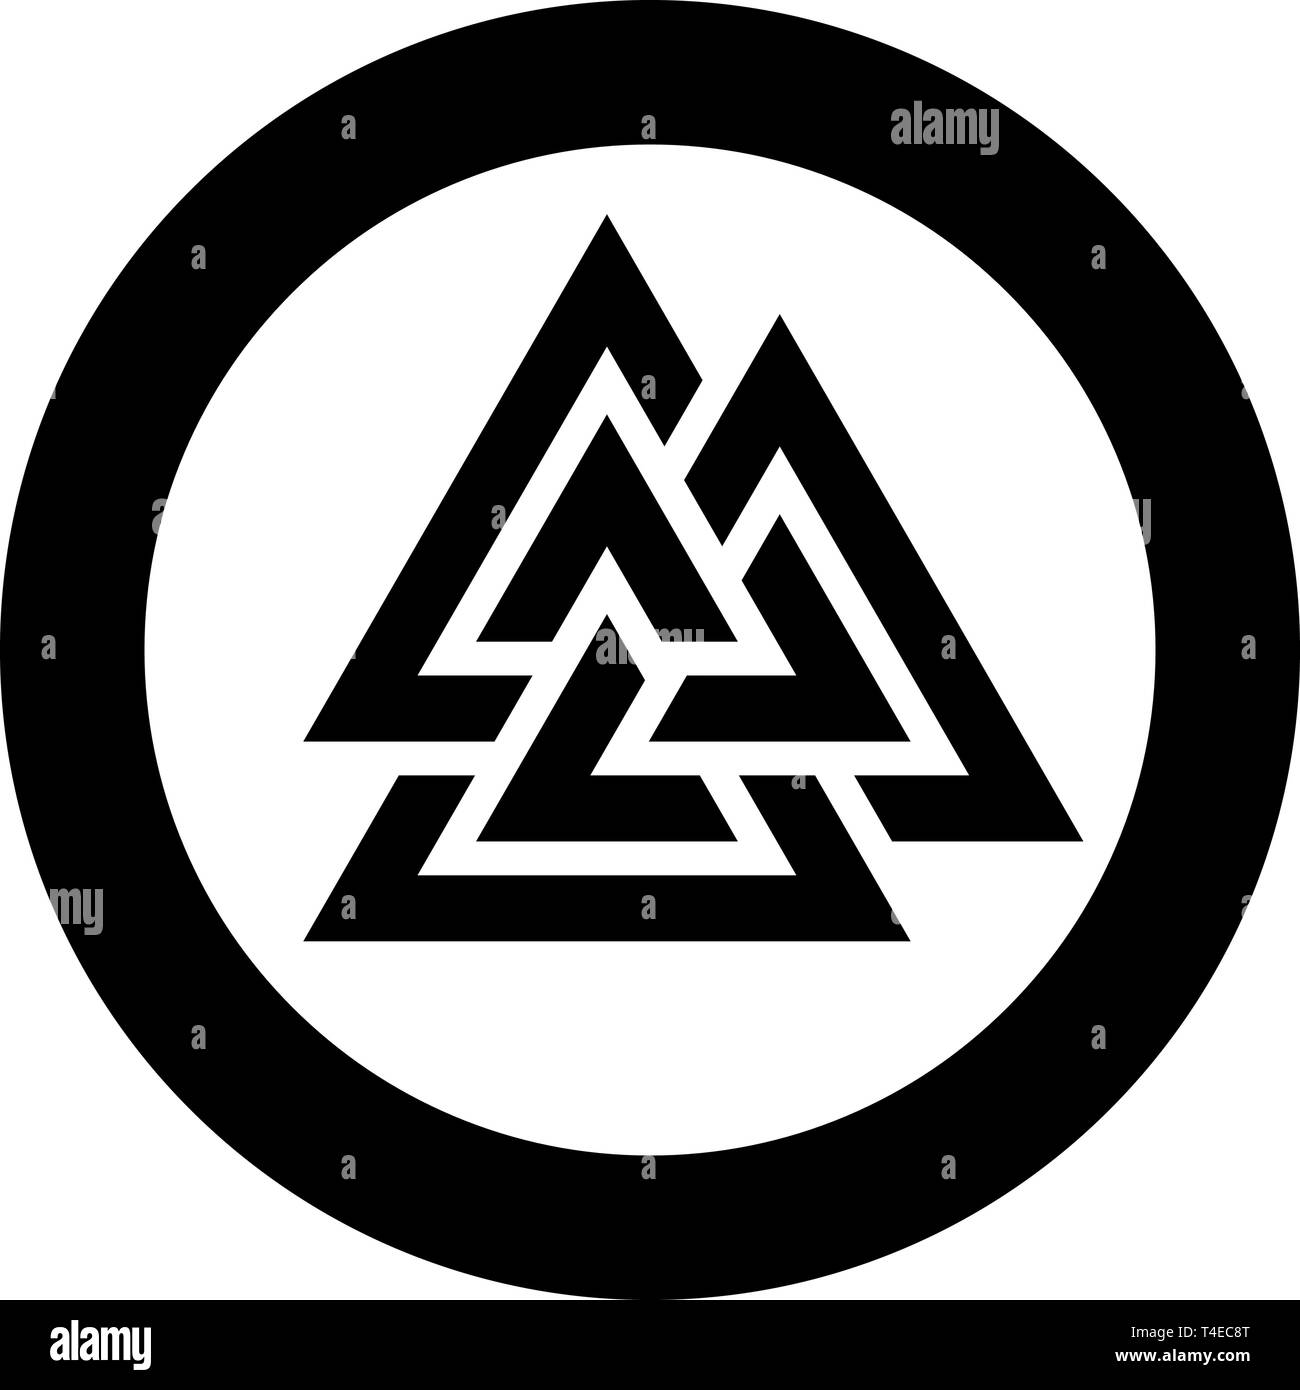 Valknut symbol icon in circle round black color vector illustration flat style simple image - Stock Vector